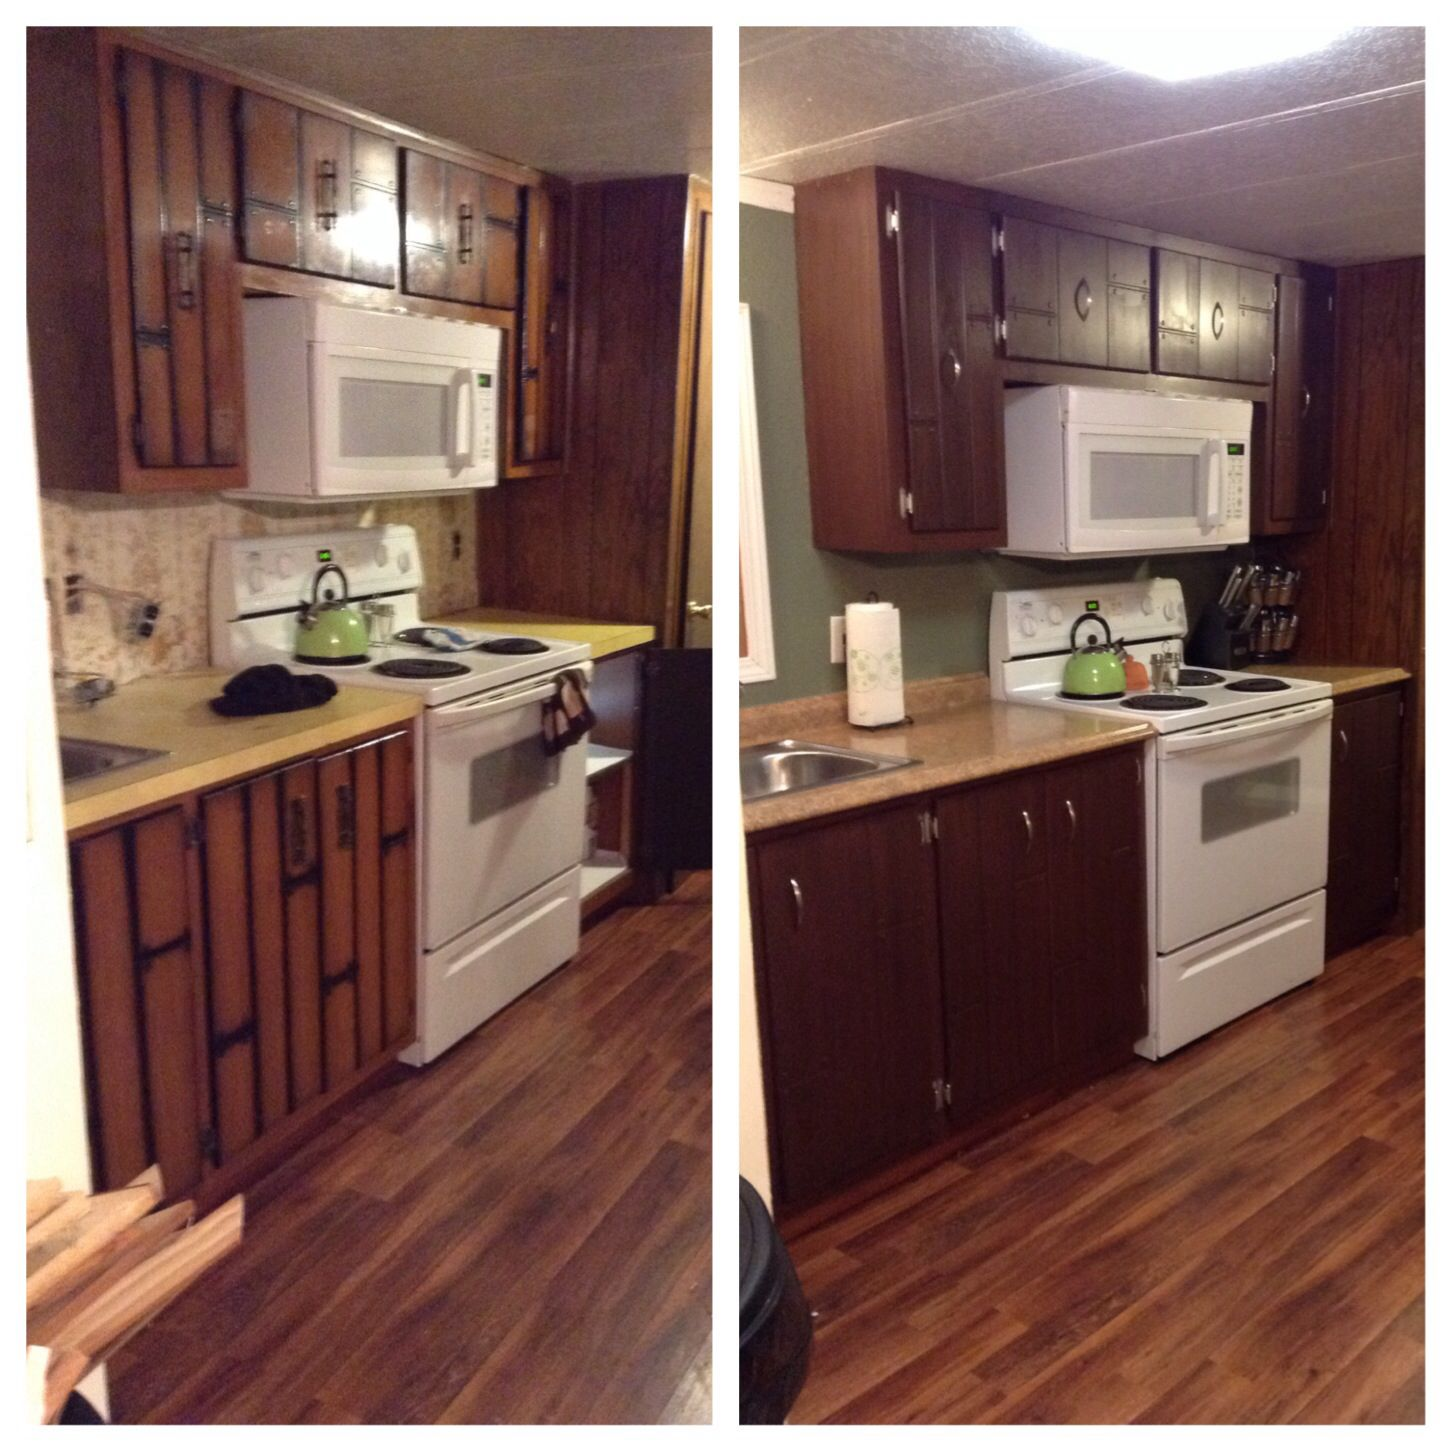 Rustoleum cabinet transformations in cocoa. | Decor | Pinterest ...